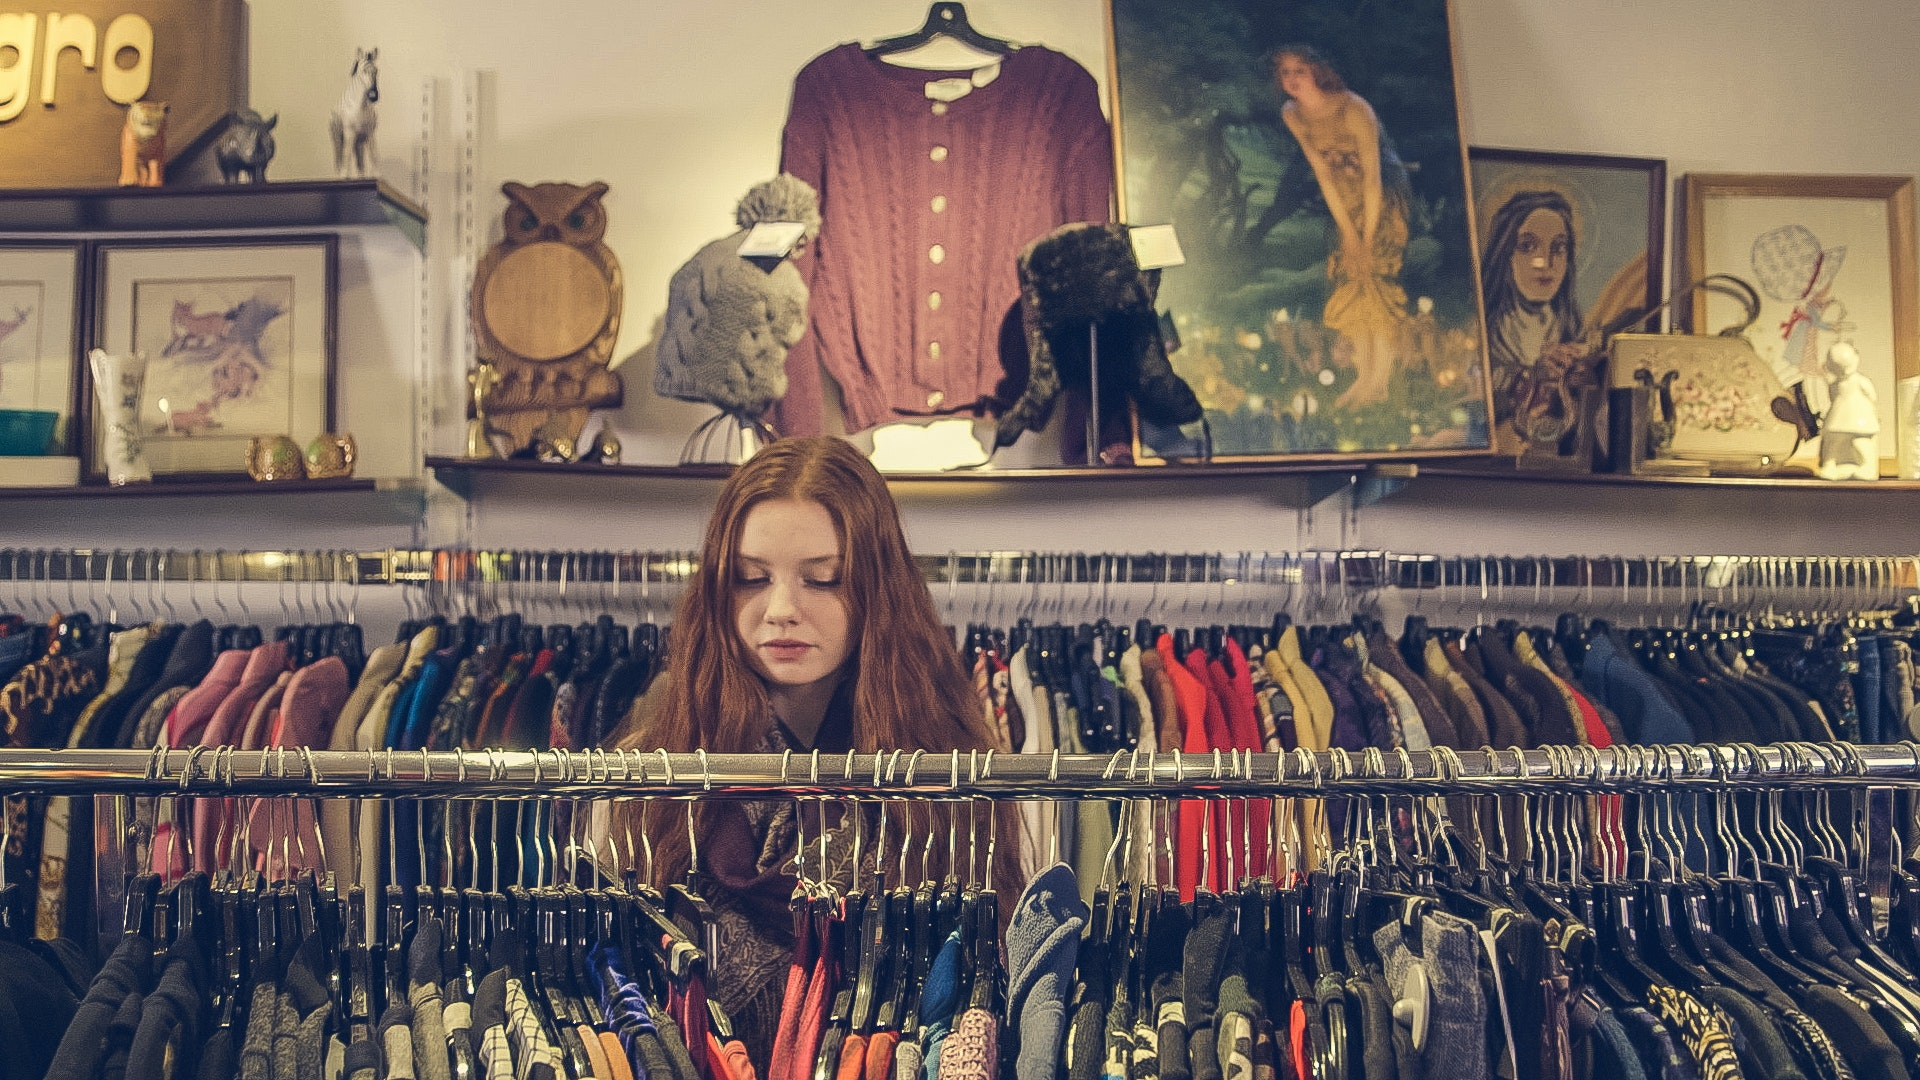 declutter your home before you move by selling your belongings to a second-hand shop